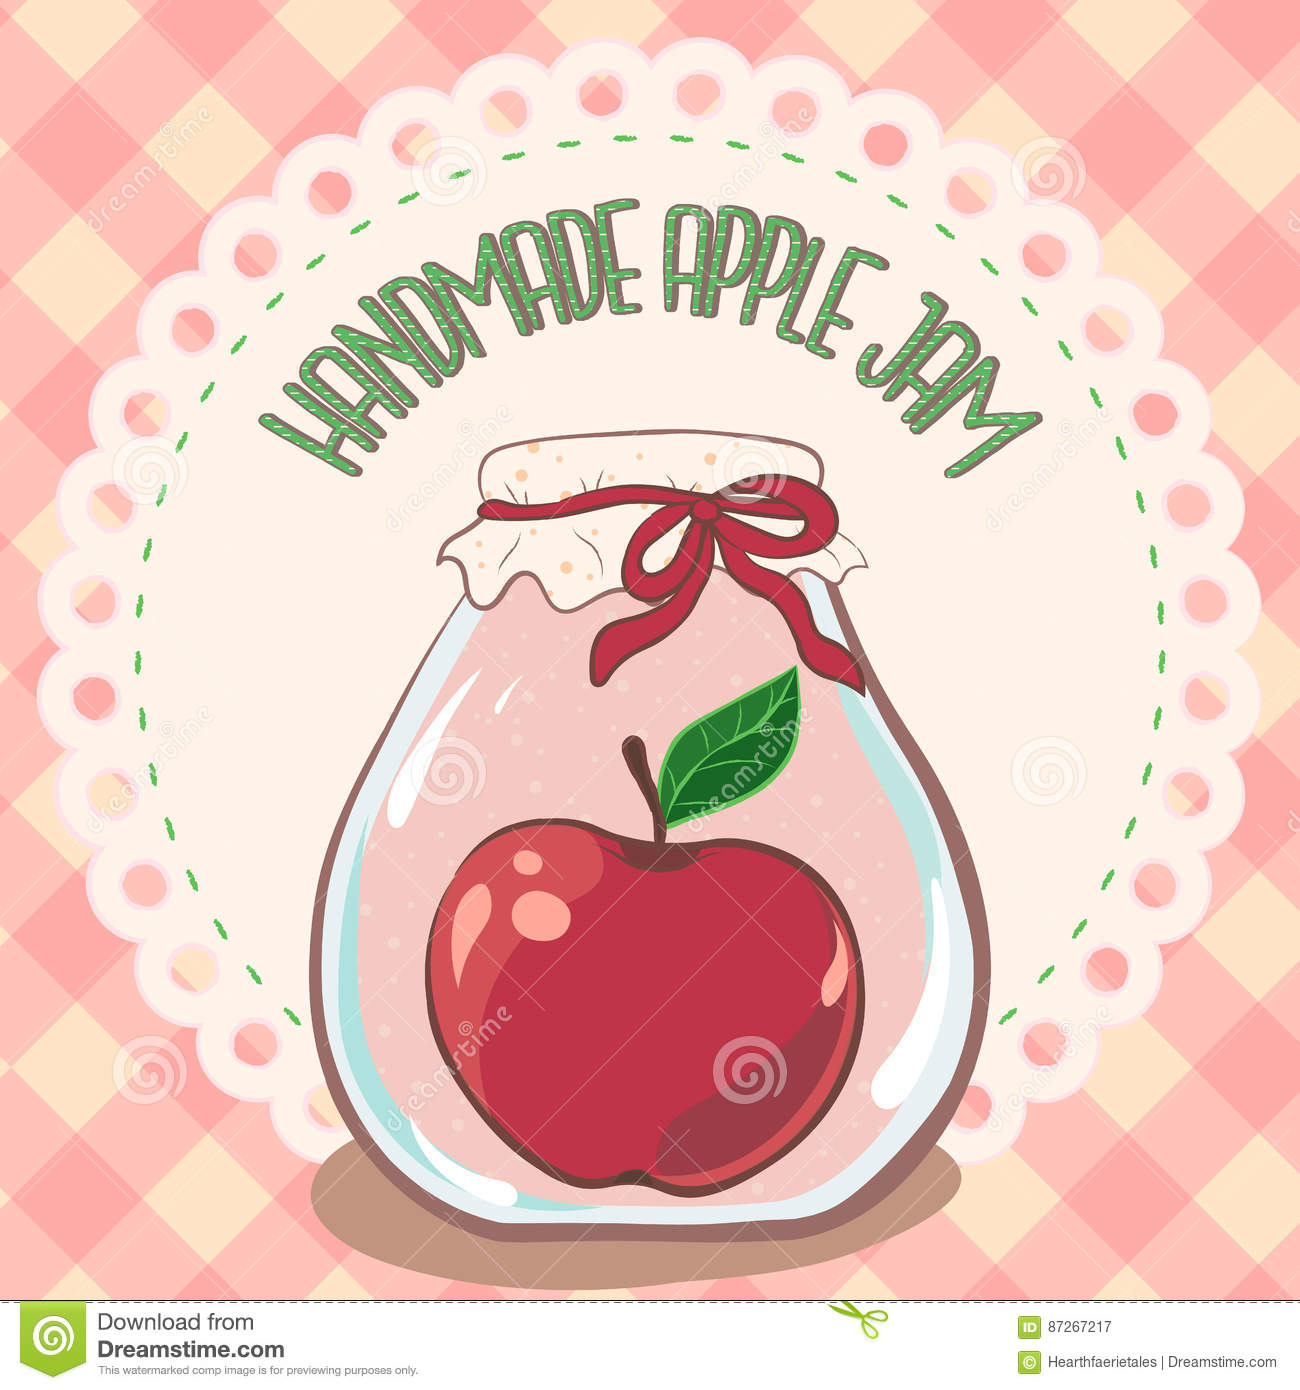 Cute Bakery Wallpaper Handmade Red Apple Jam Jar On Lace Doily Label And Gingham